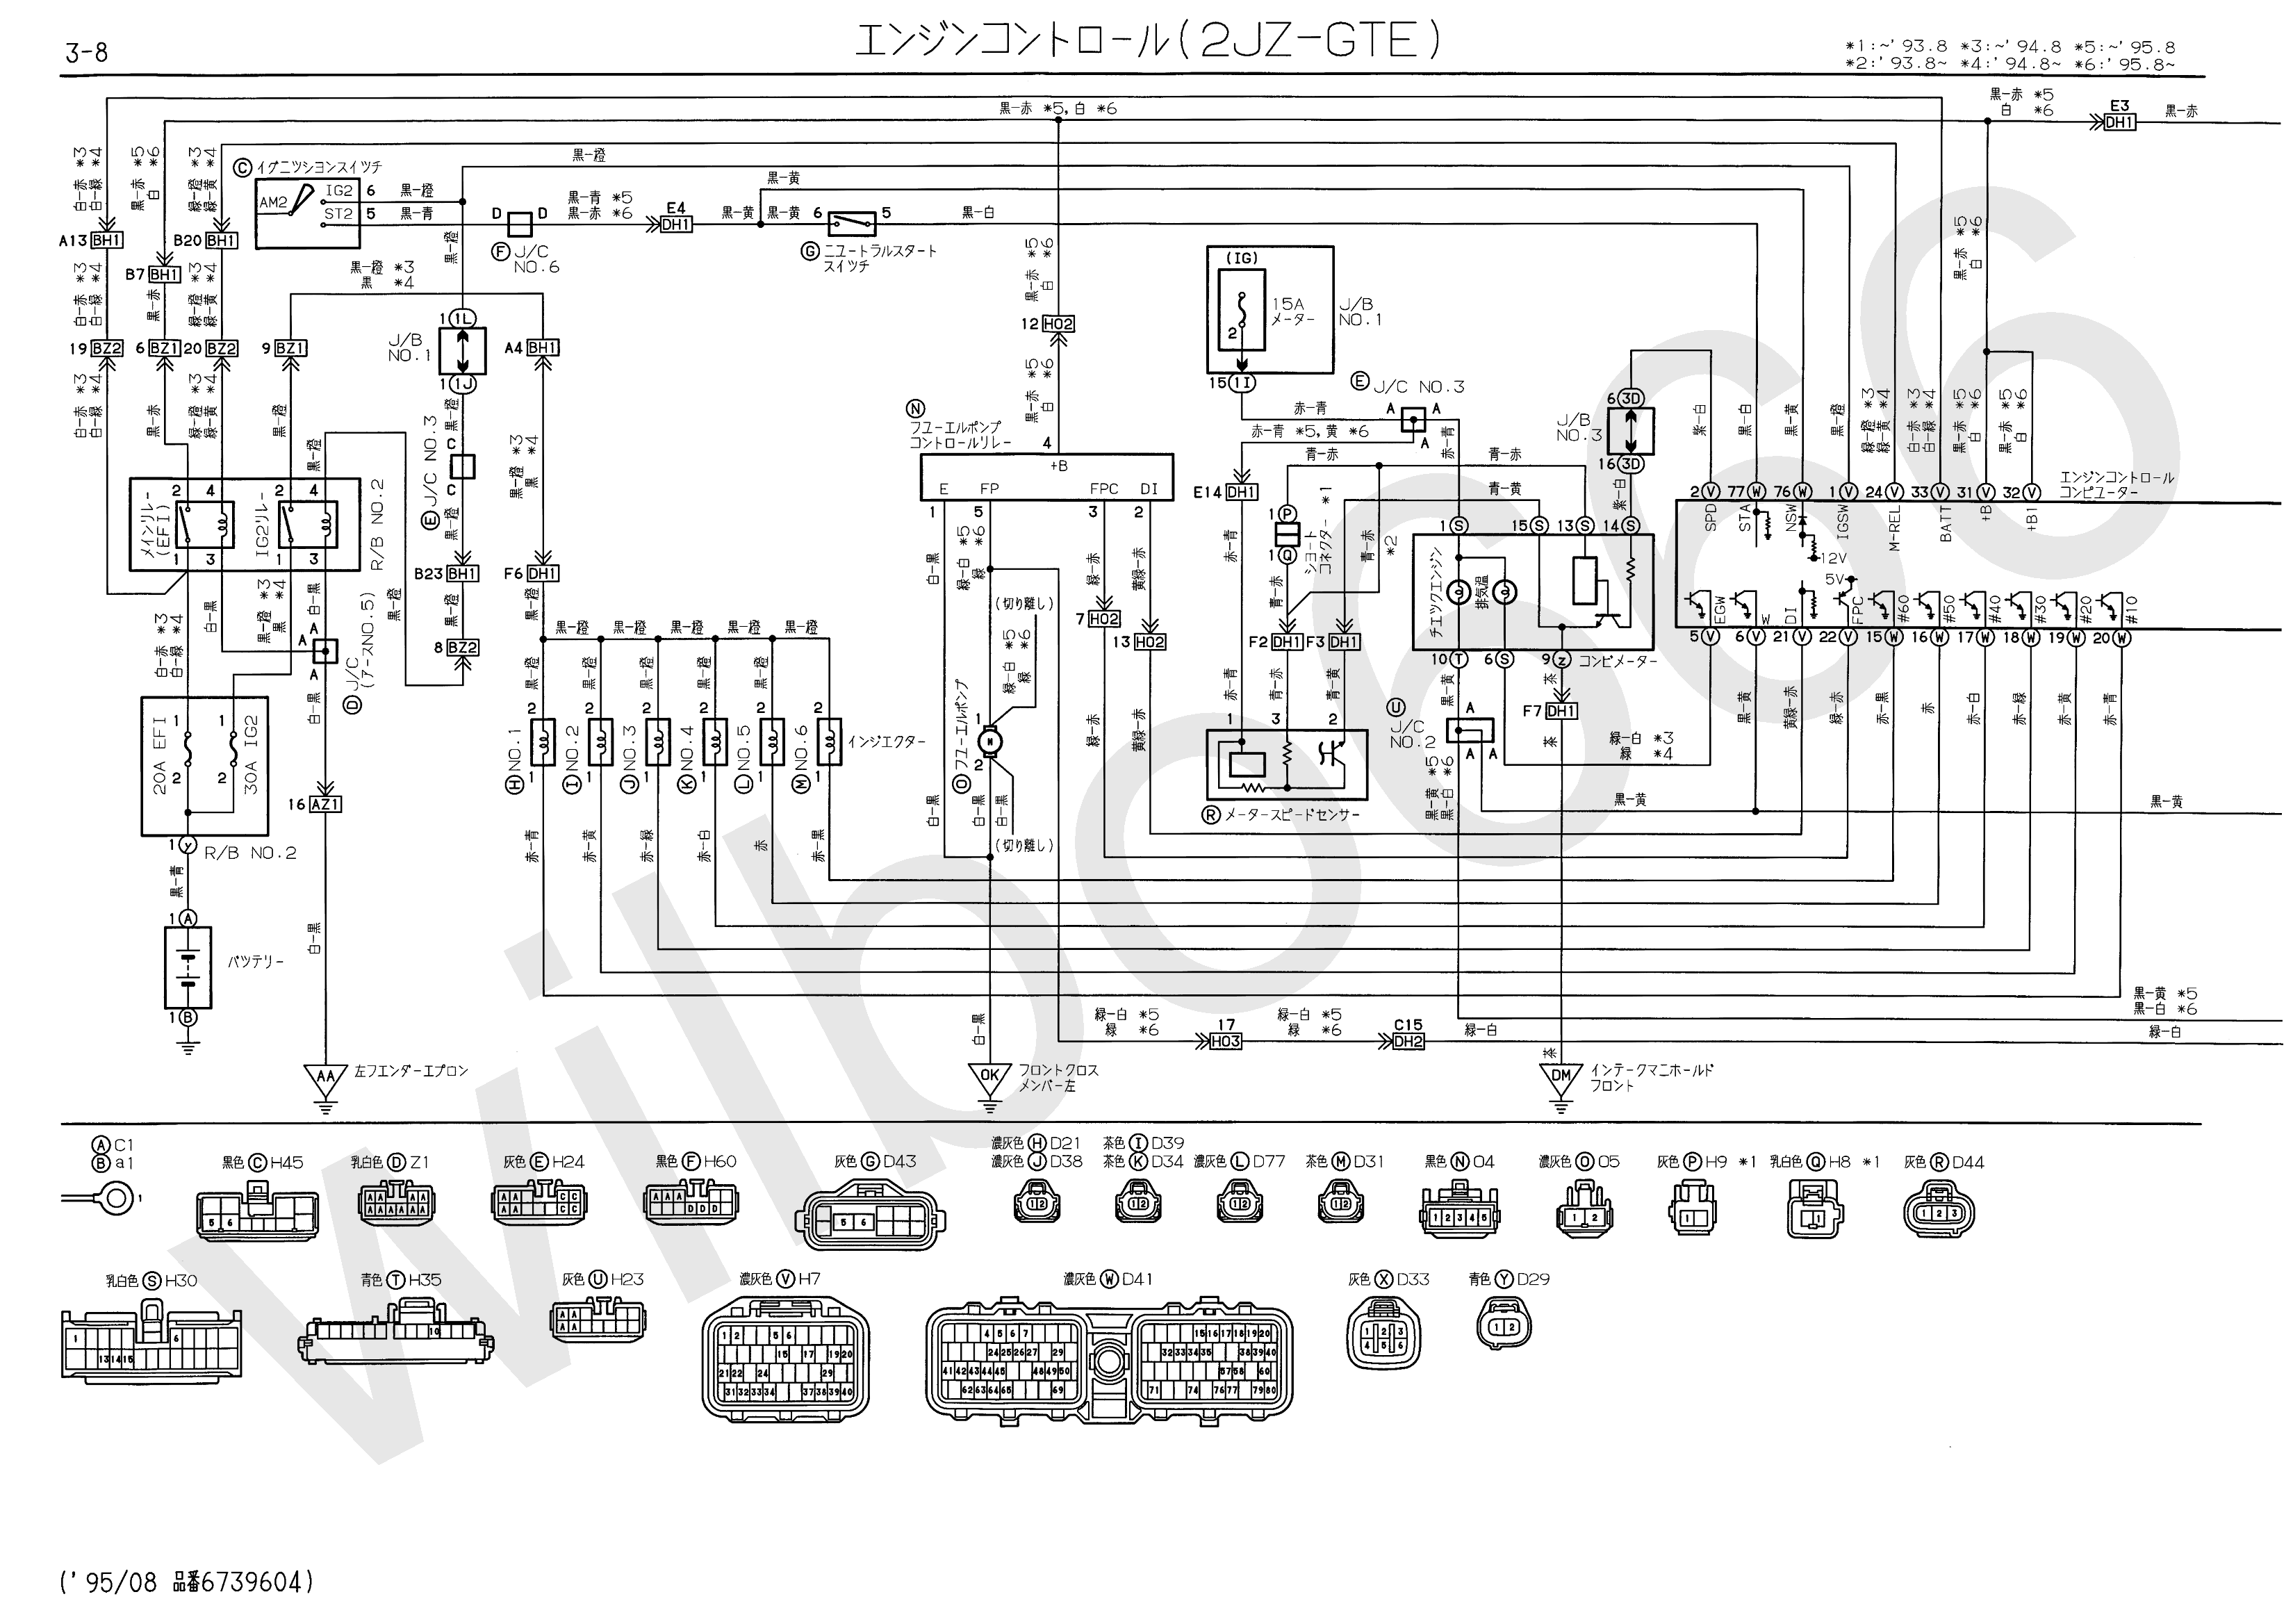 1jz Engine Sensor Diagram Wiring Bibliotheca Ac Diagrams 2002 Corvette 2jz Gte Detailed 1981